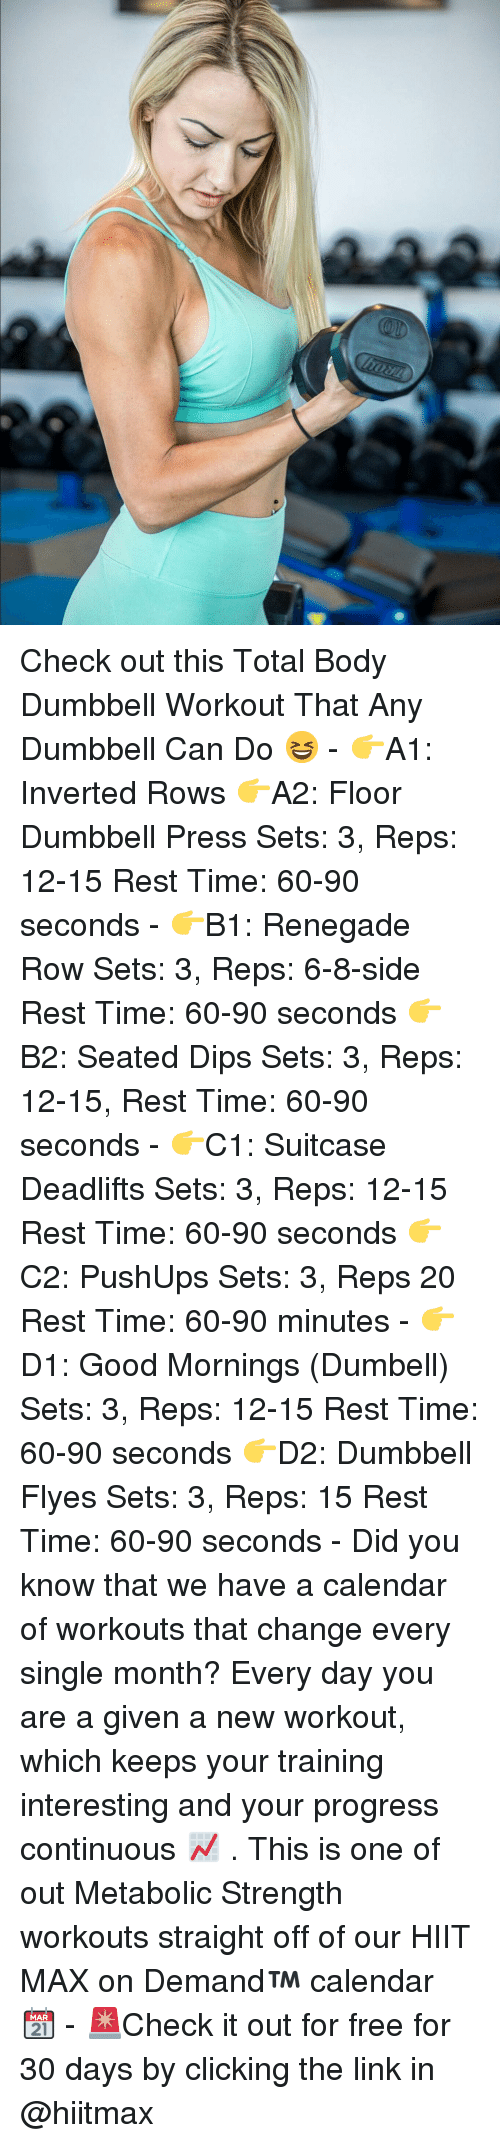 Check Out This Total Body Dumbbell Workout That Any Dumbbell